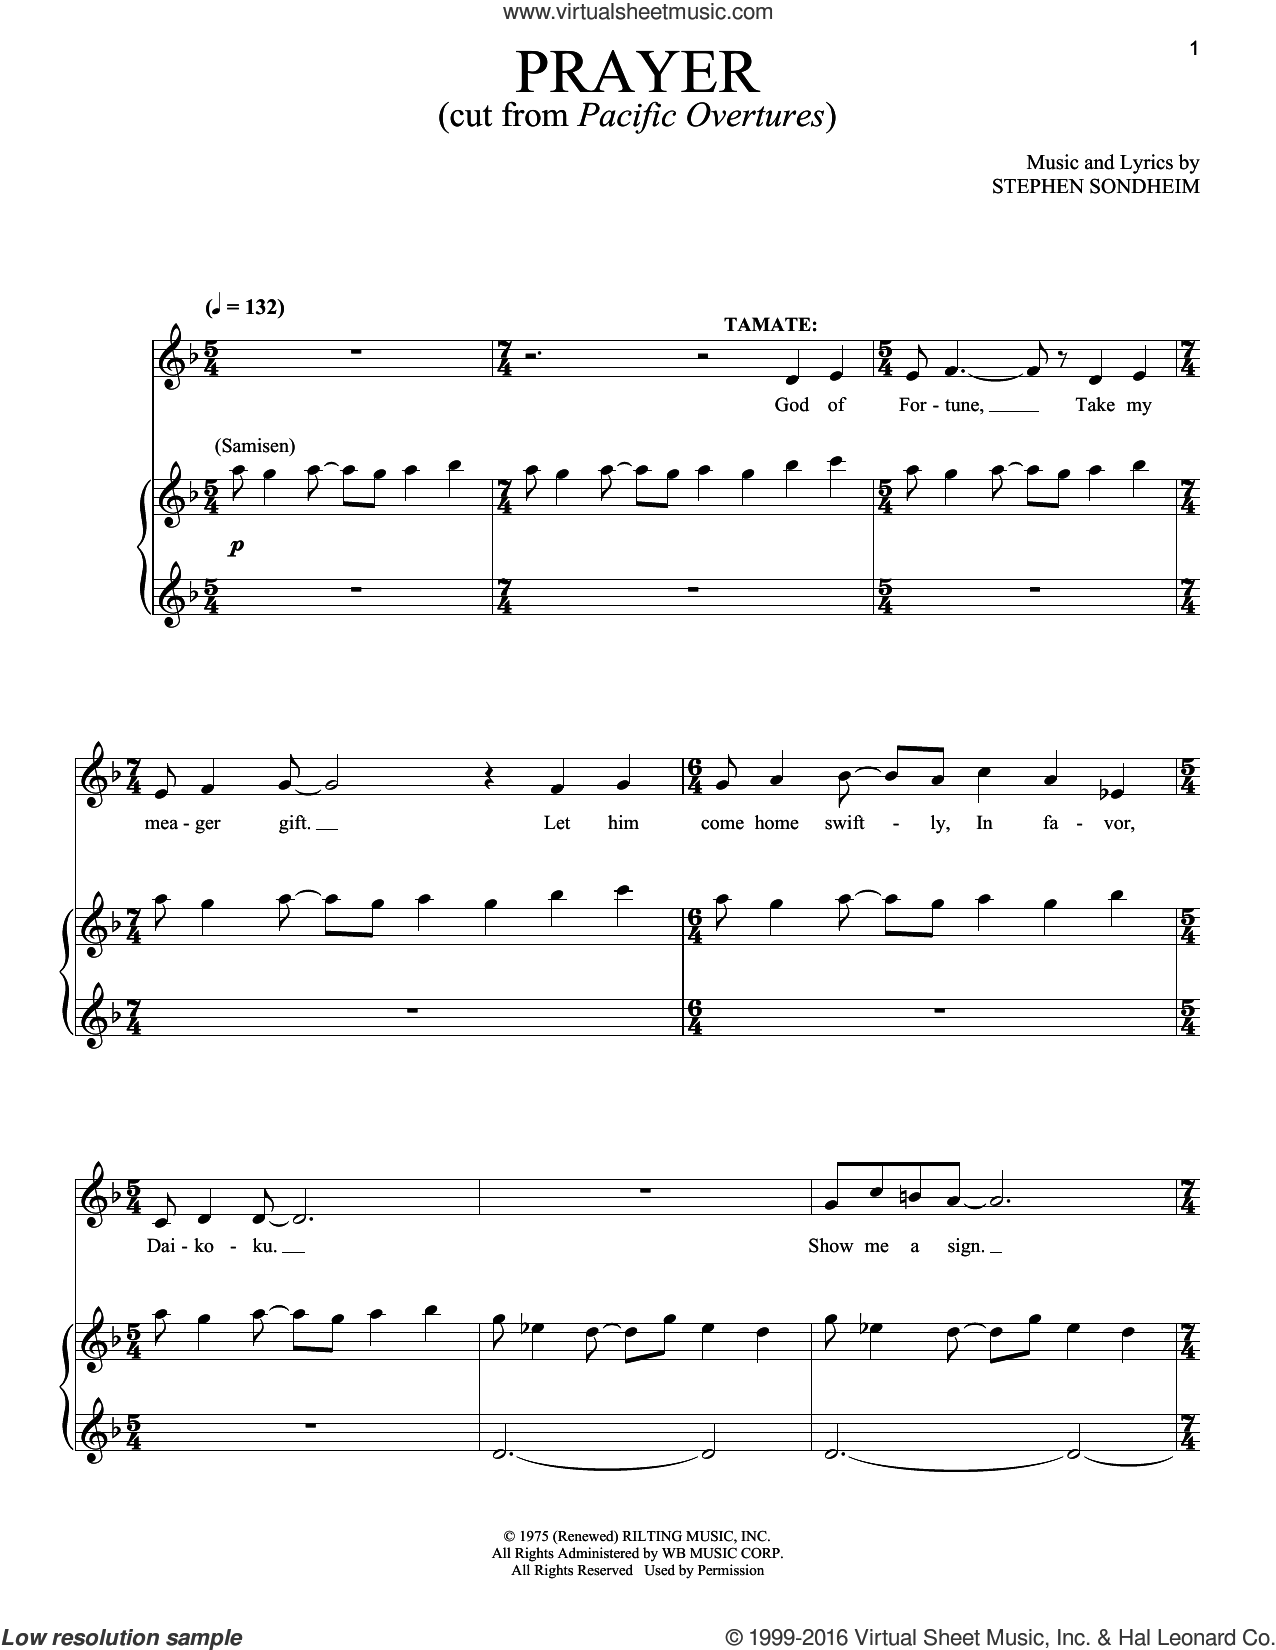 Prayers sheet music for voice and piano by Stephen Sondheim